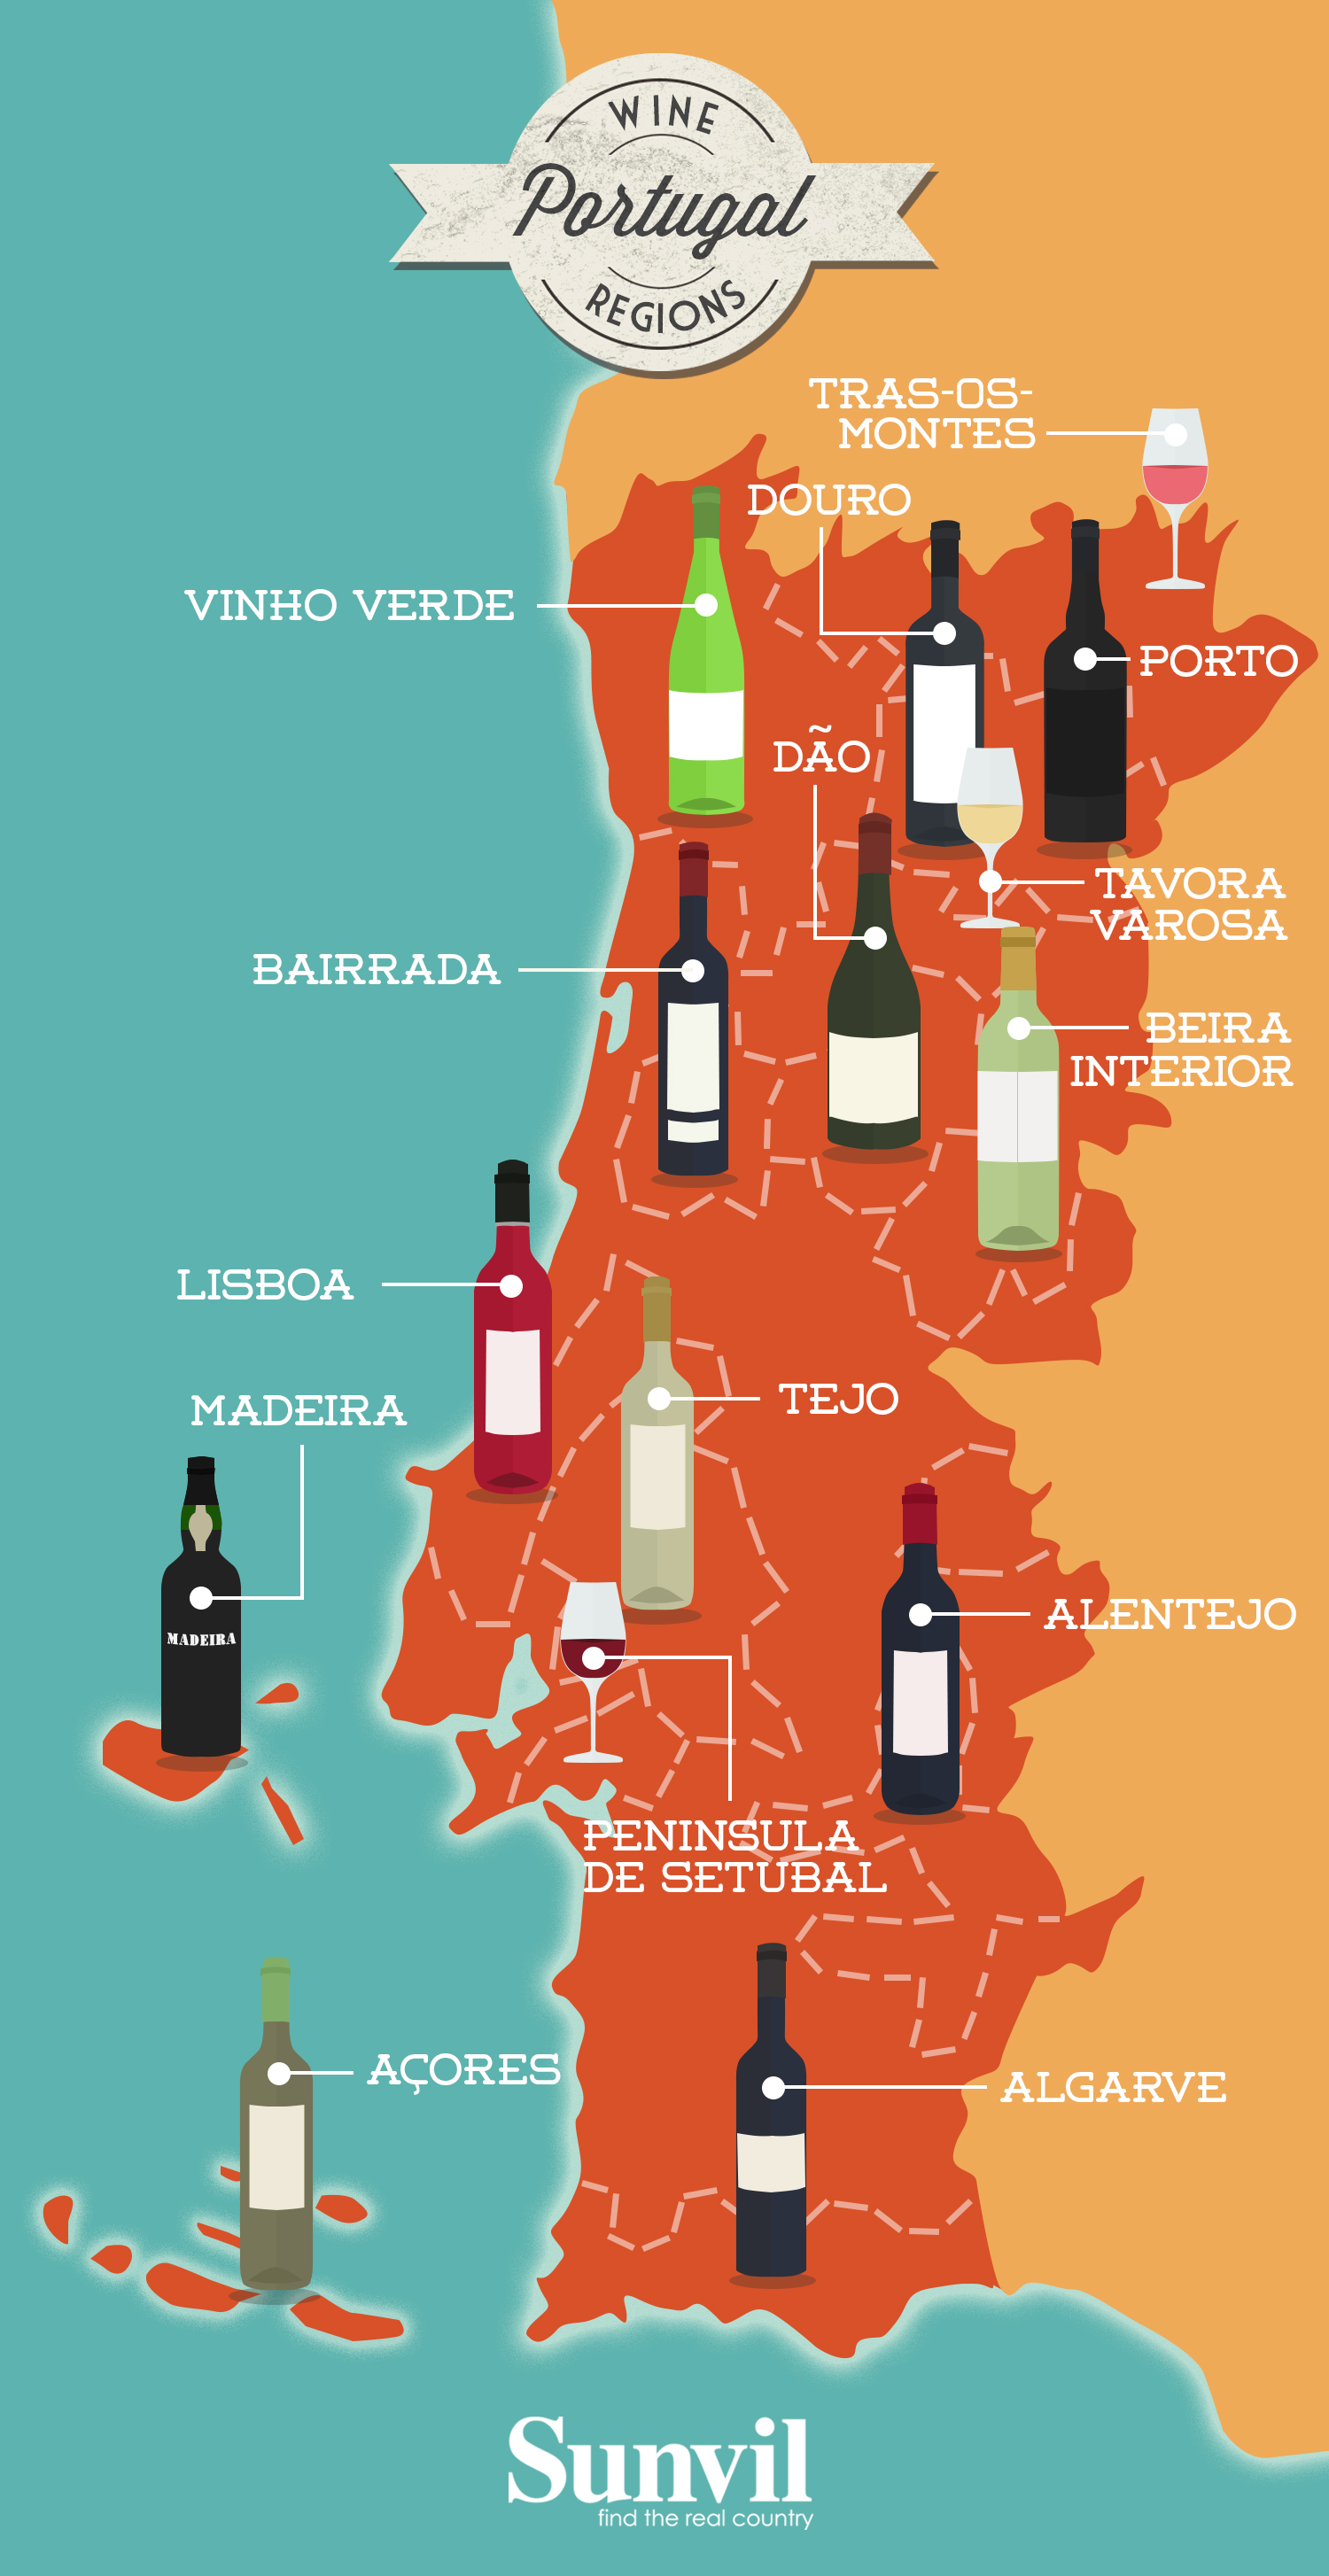 Map Of The Wine Regions Of Portugal Portuguese Wine Map - Map portugal madeira azores